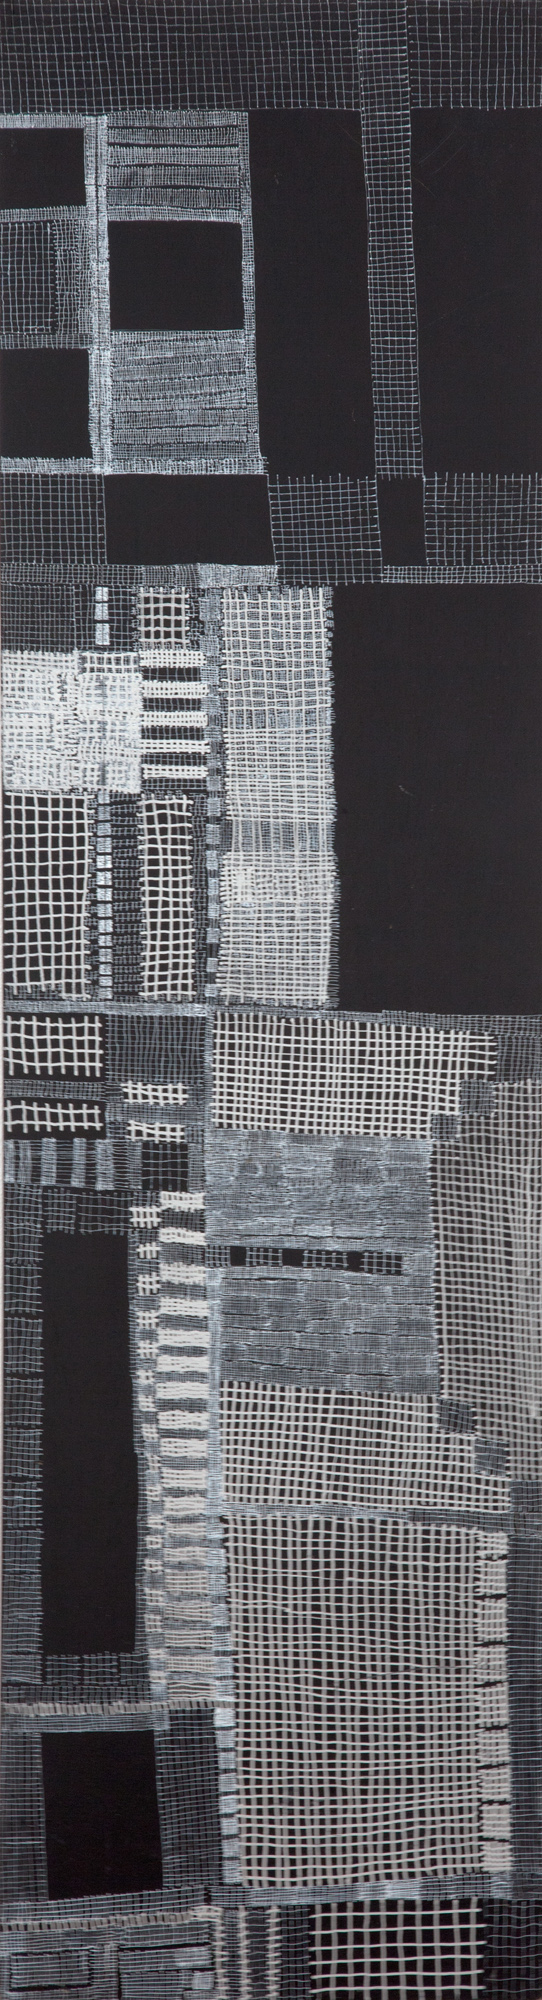 "918_City Scapes_pen on panel_29.5 x 8""_1999.jpg"